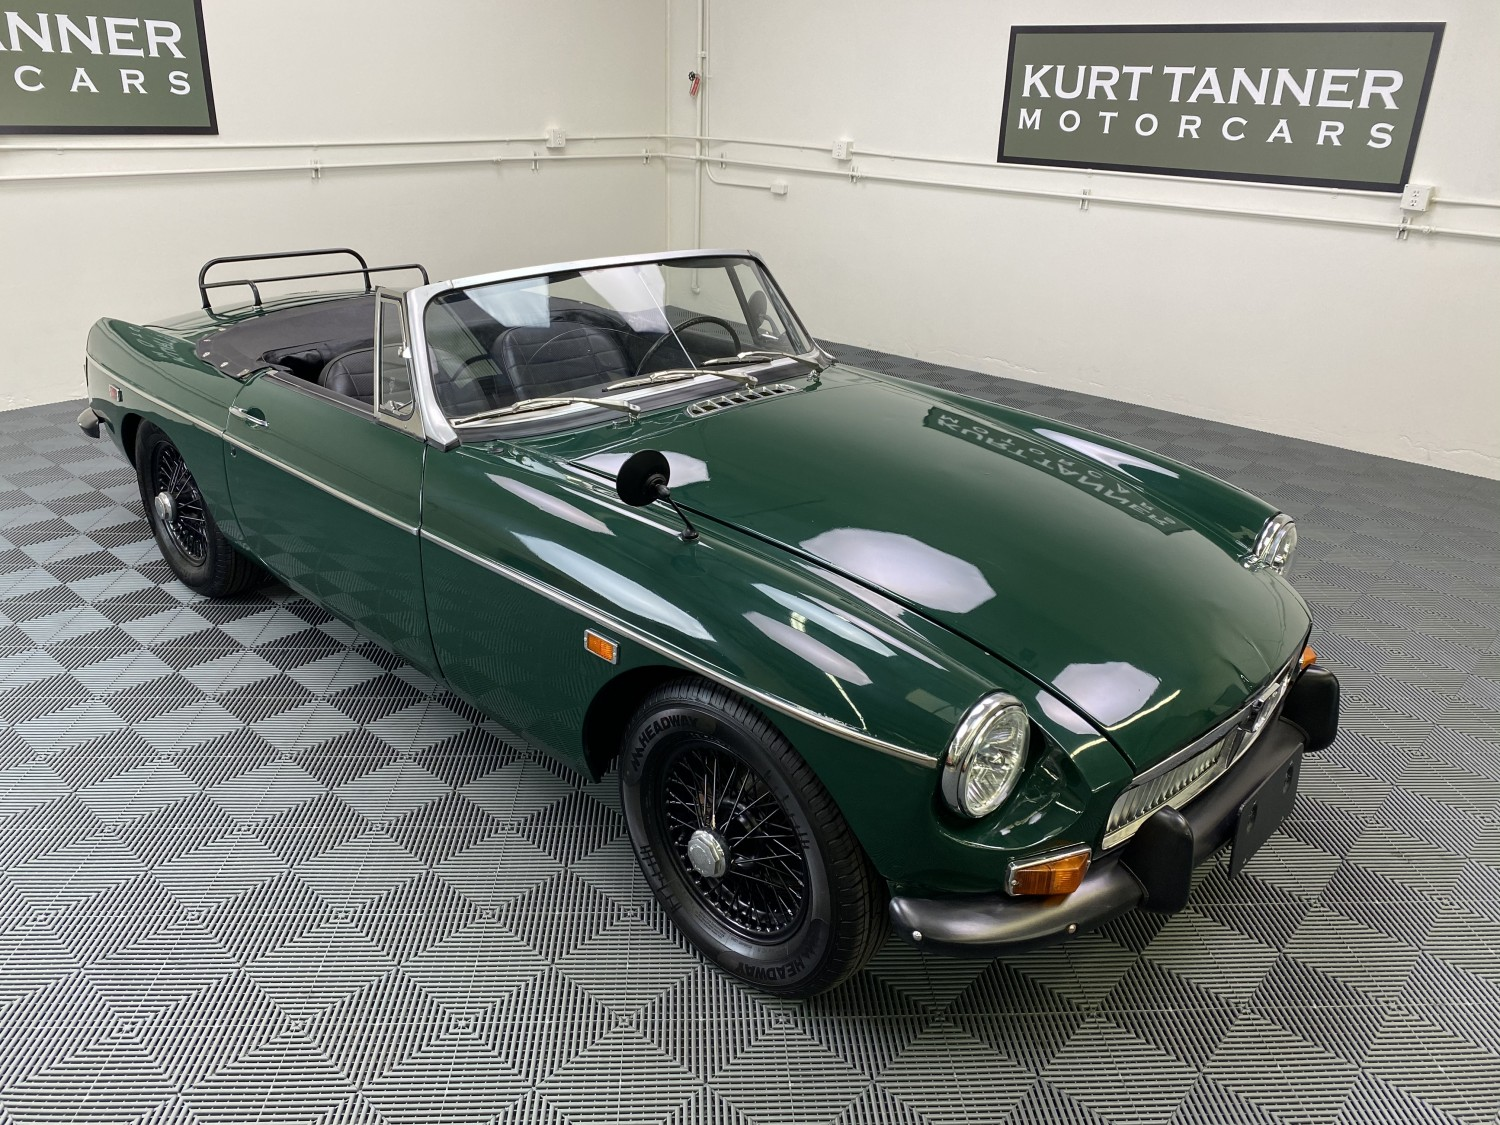 1969 MGB ROADSTER. BRITISH RACING GREEN WITH BLACK INTERIOR, TOP BOOT, BLACK HARDTOP WITH SUNROOF. 4-SPEED WITH OVERDRIVE, BLACK WIRE WHEELS, LUGGAGE RACK. NICE RUNNING AND DRIVING CAR.